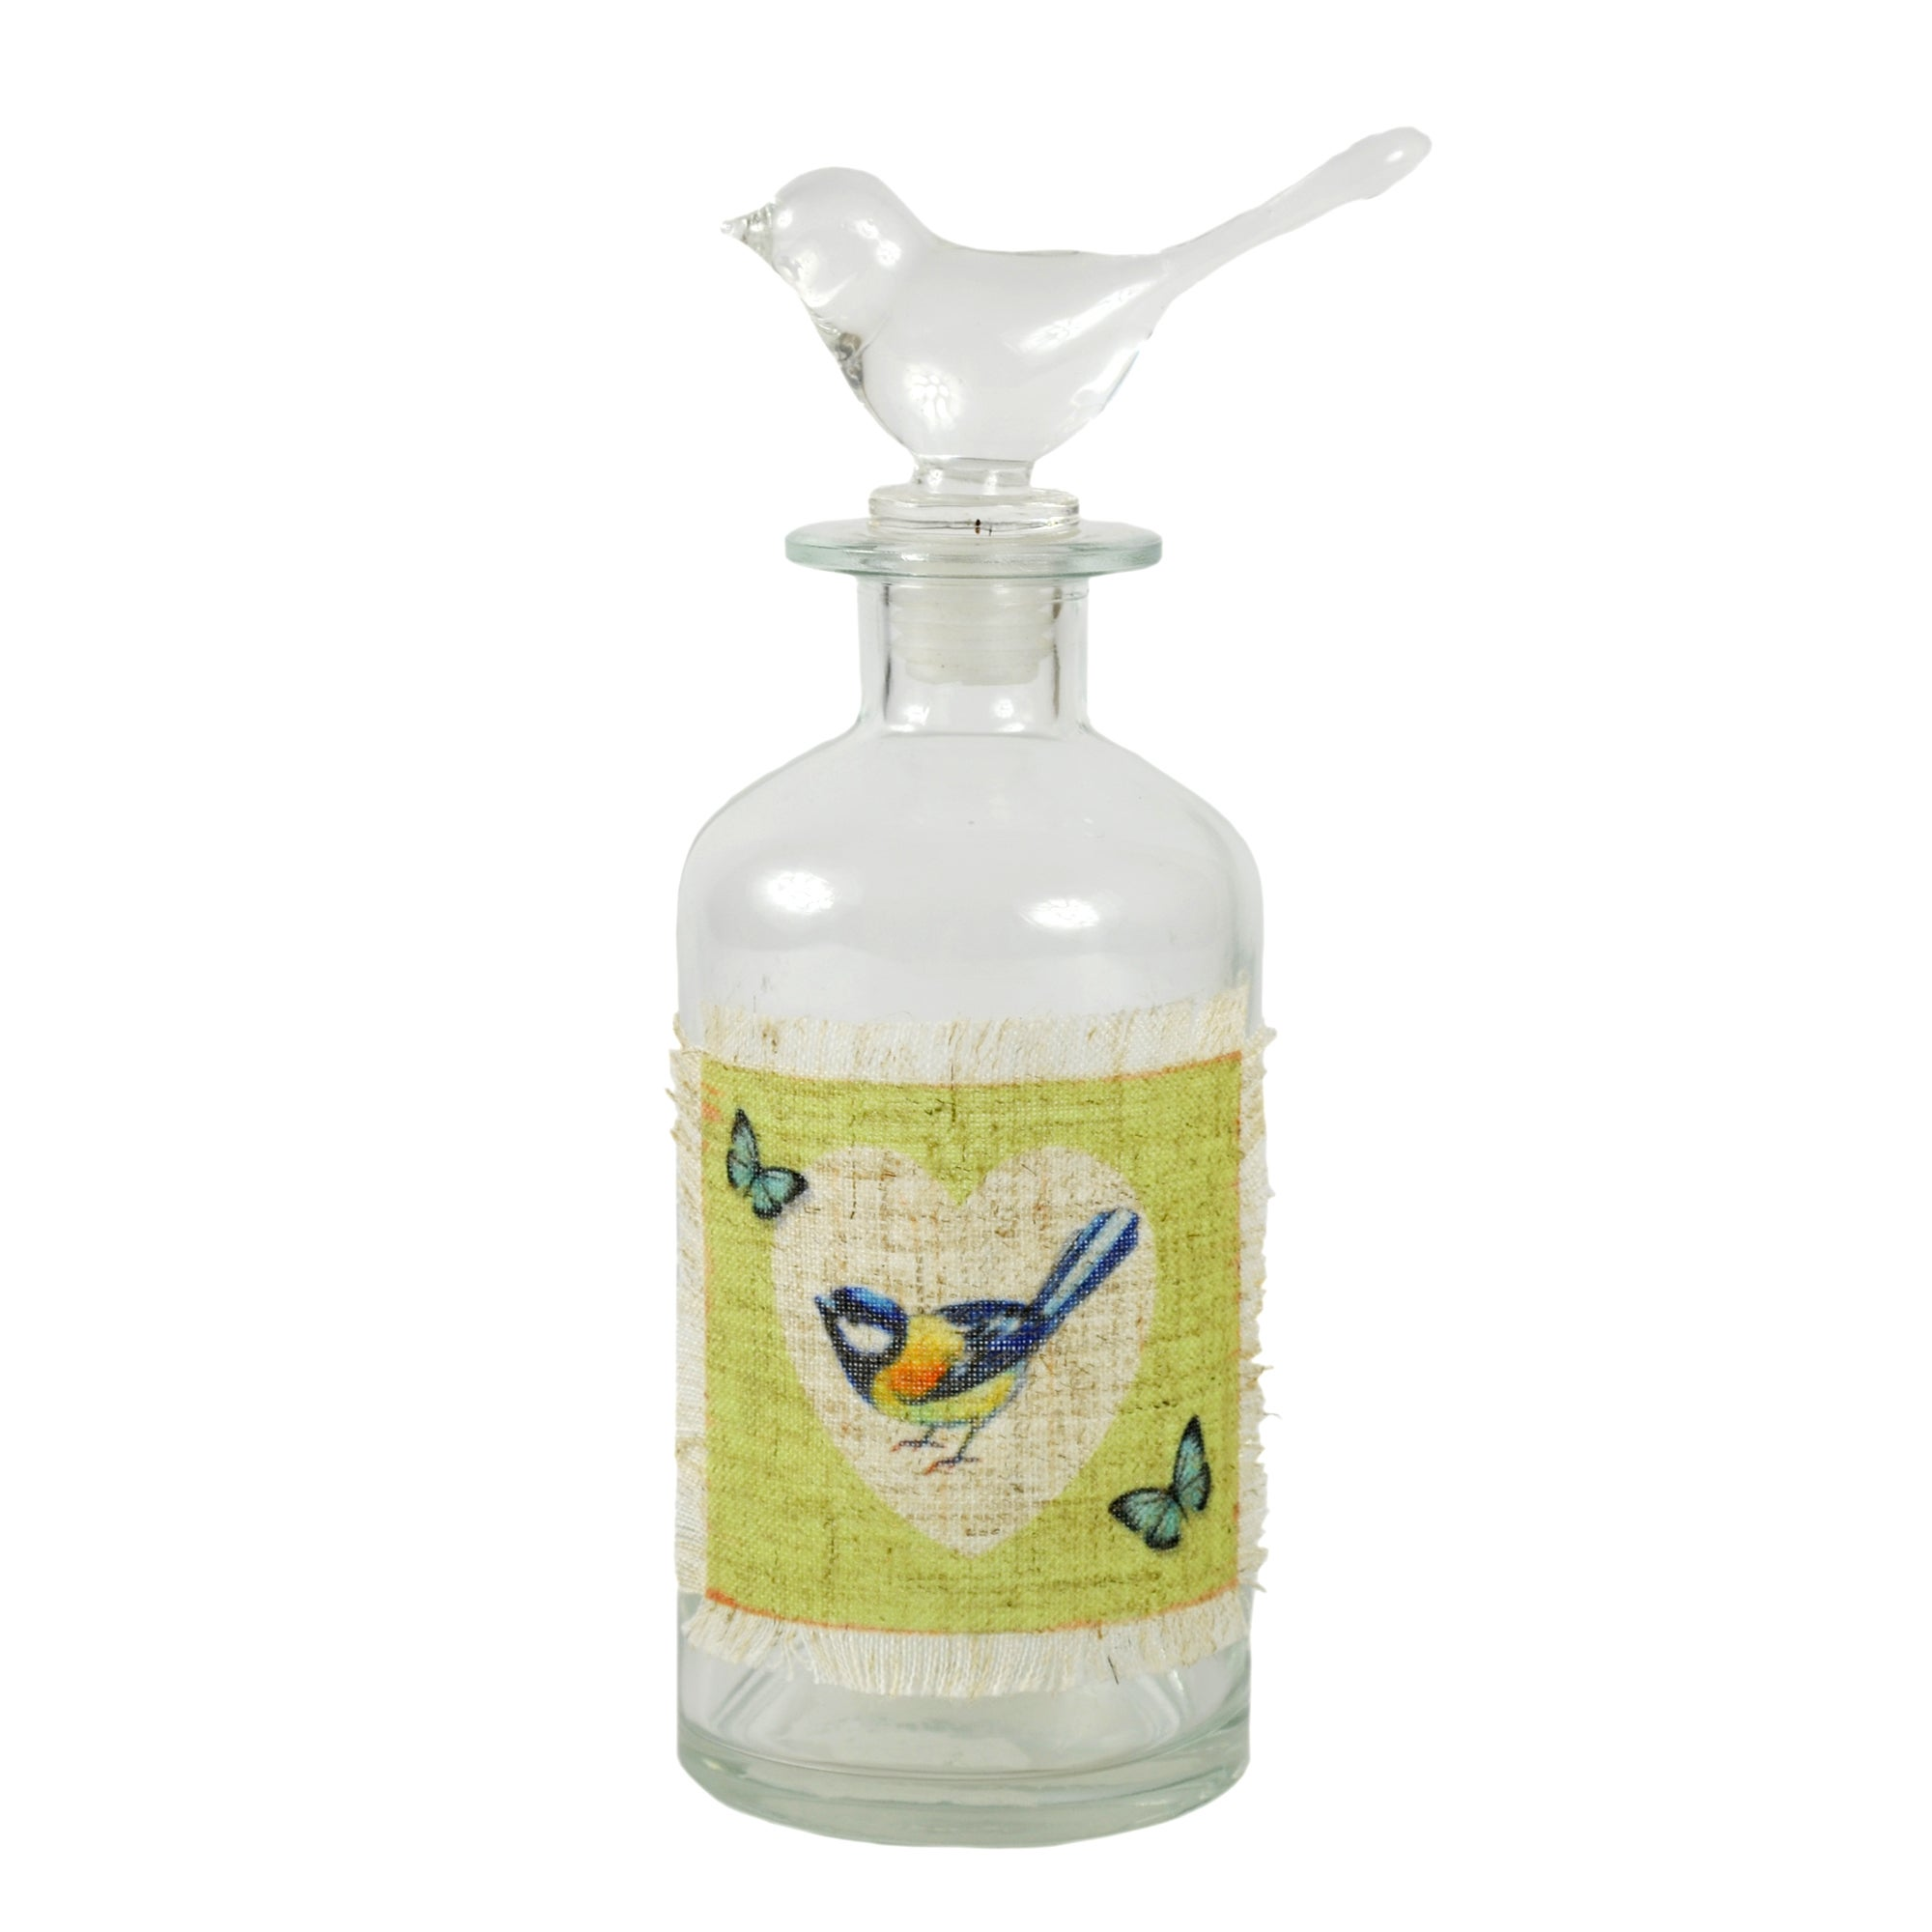 Key Lime Collection Glass Bottle with Bird Stopper